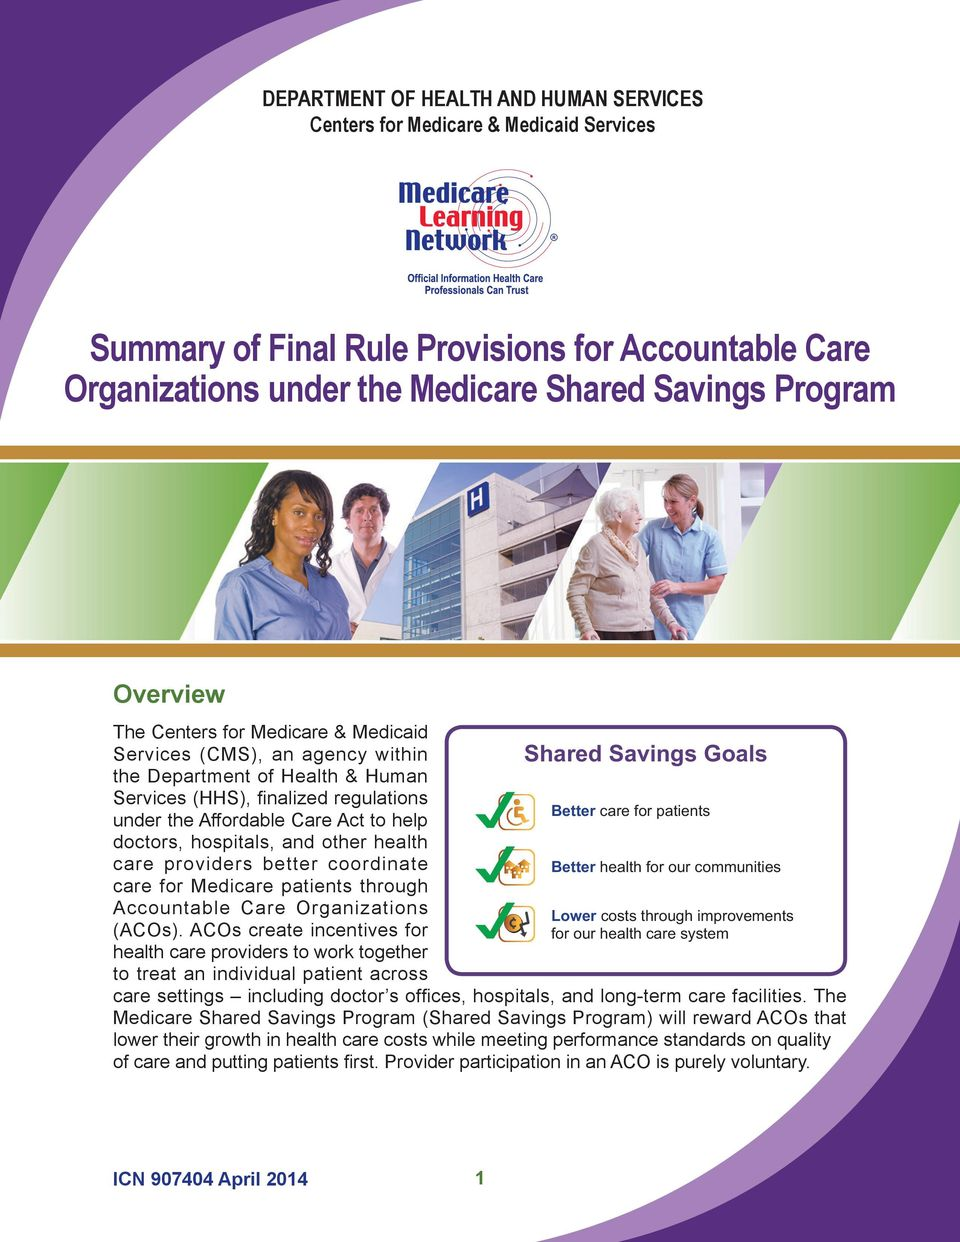 for Medicare patients through Accountable Care Organizations (ACOs).